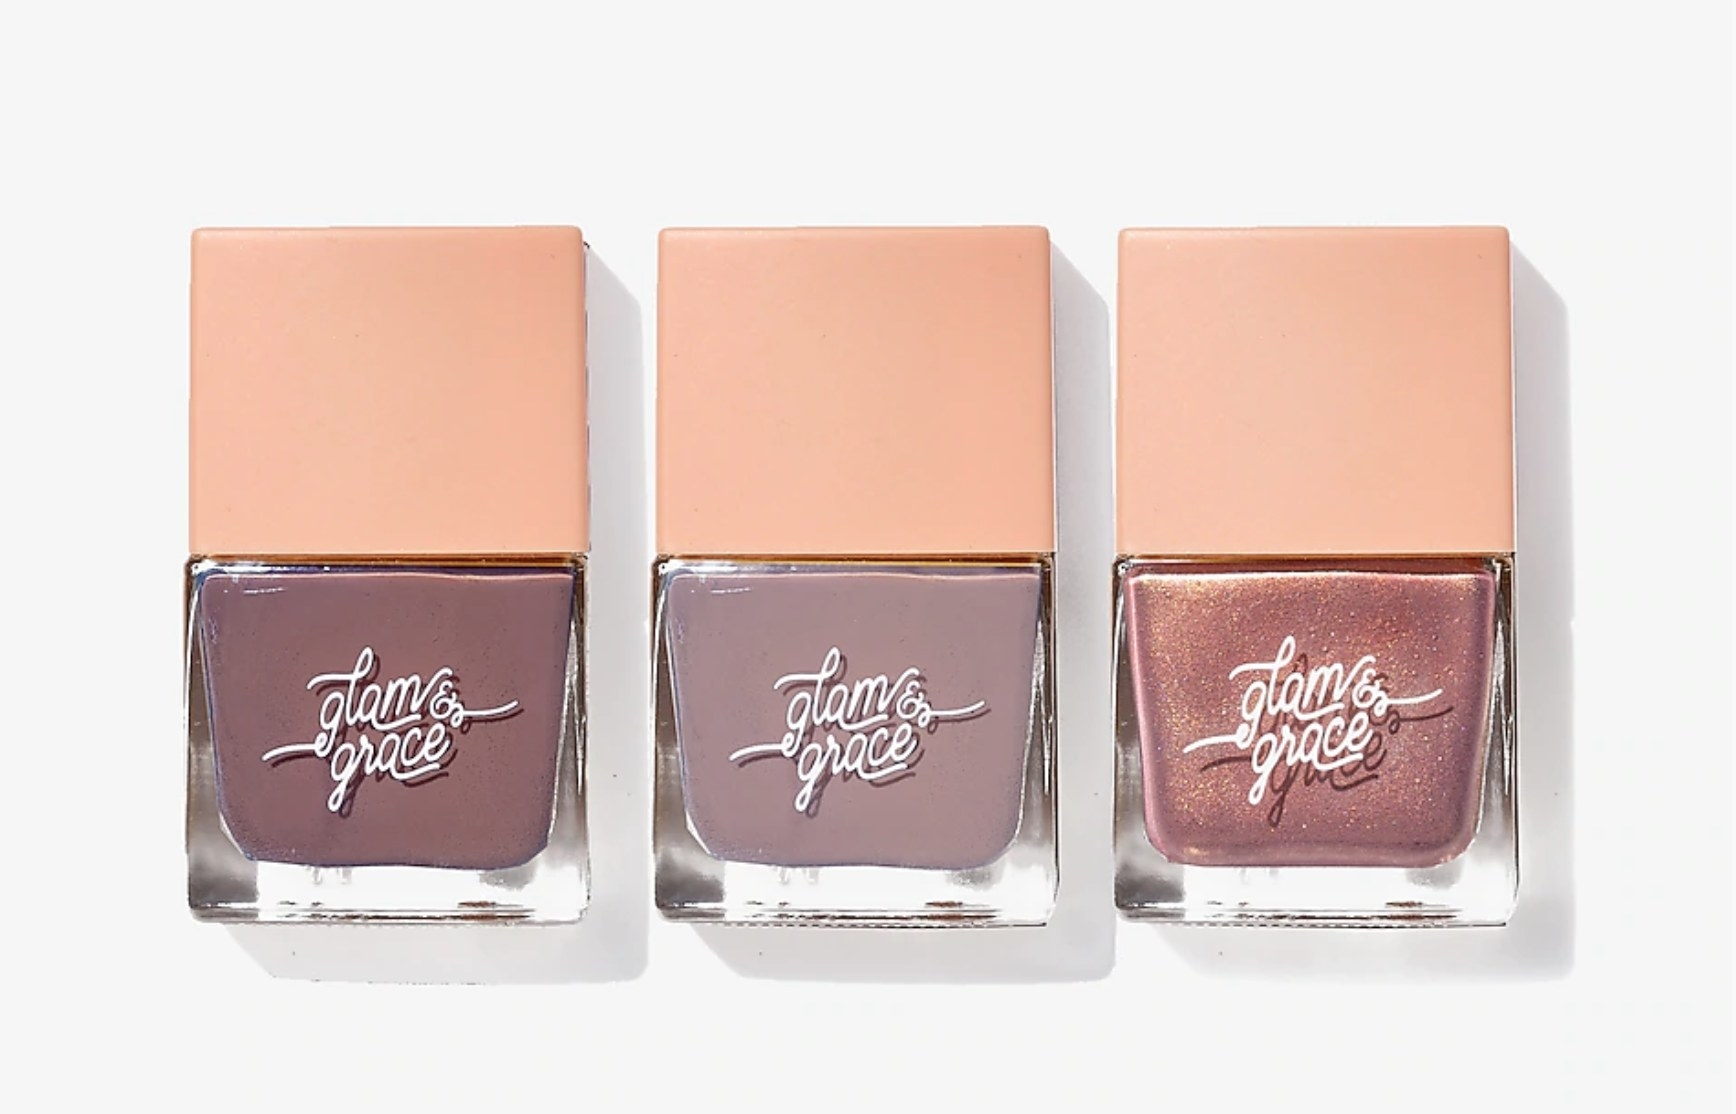 A pack of three bottles of nail polish in mauve, pink, and shiny pink